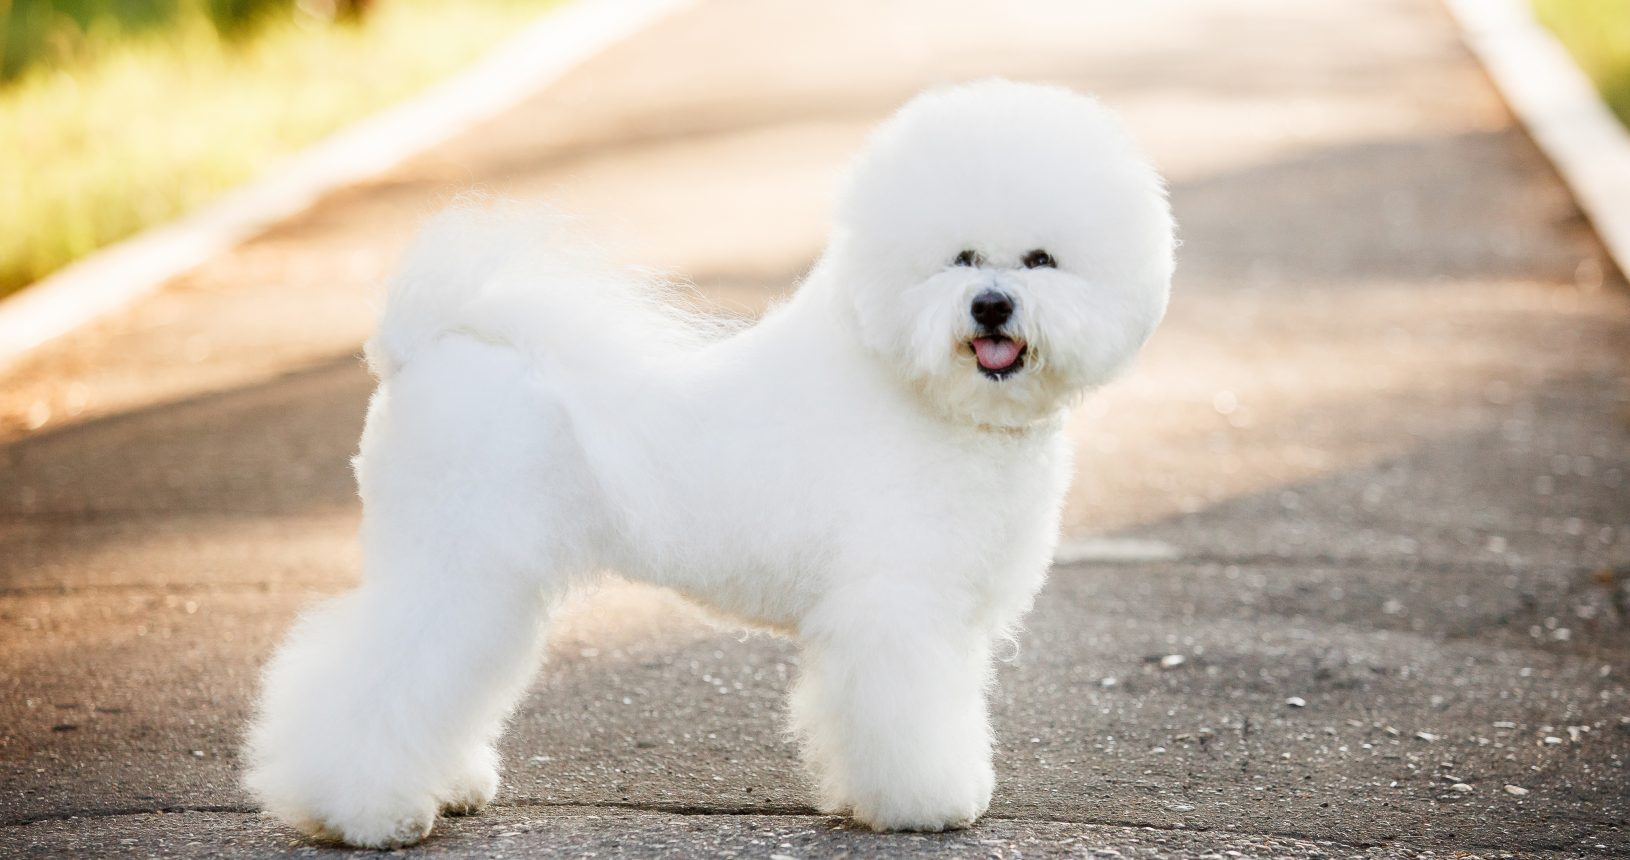 Bichon Frise Puppies For Sale Singapore - Puppies Sale In